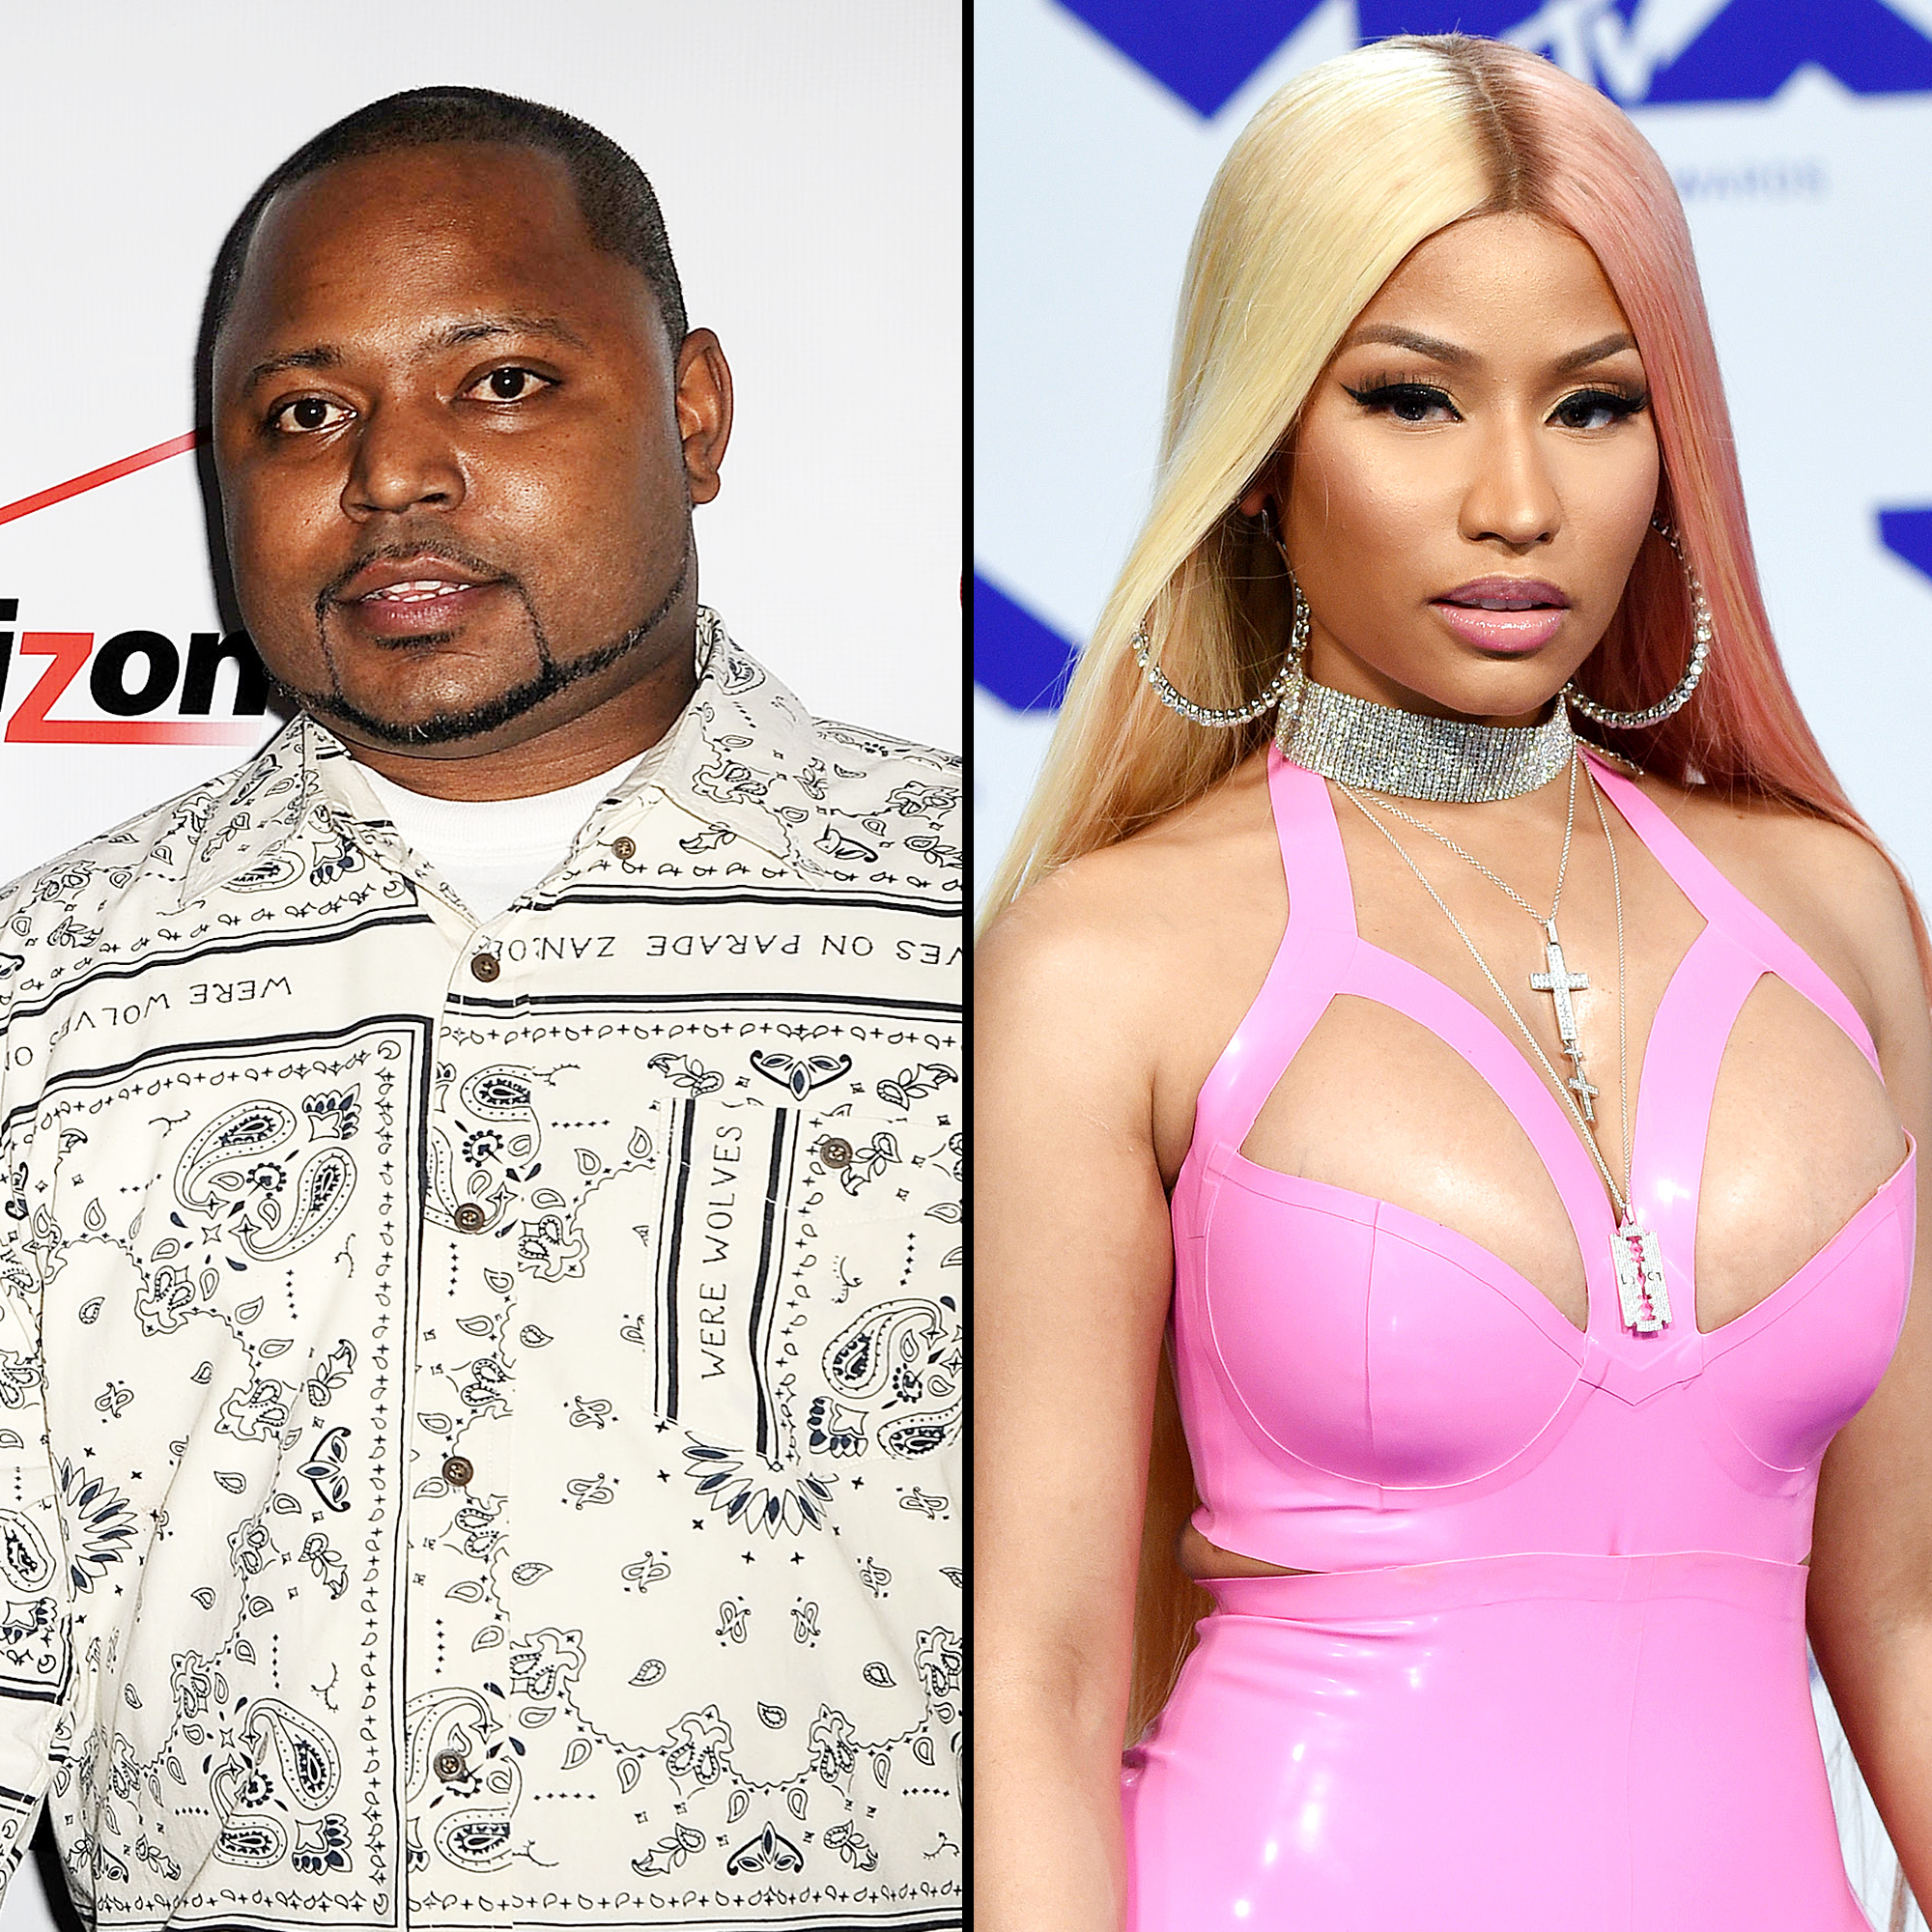 Nicki Minaj's Brother Guilty in Child Rape Trial